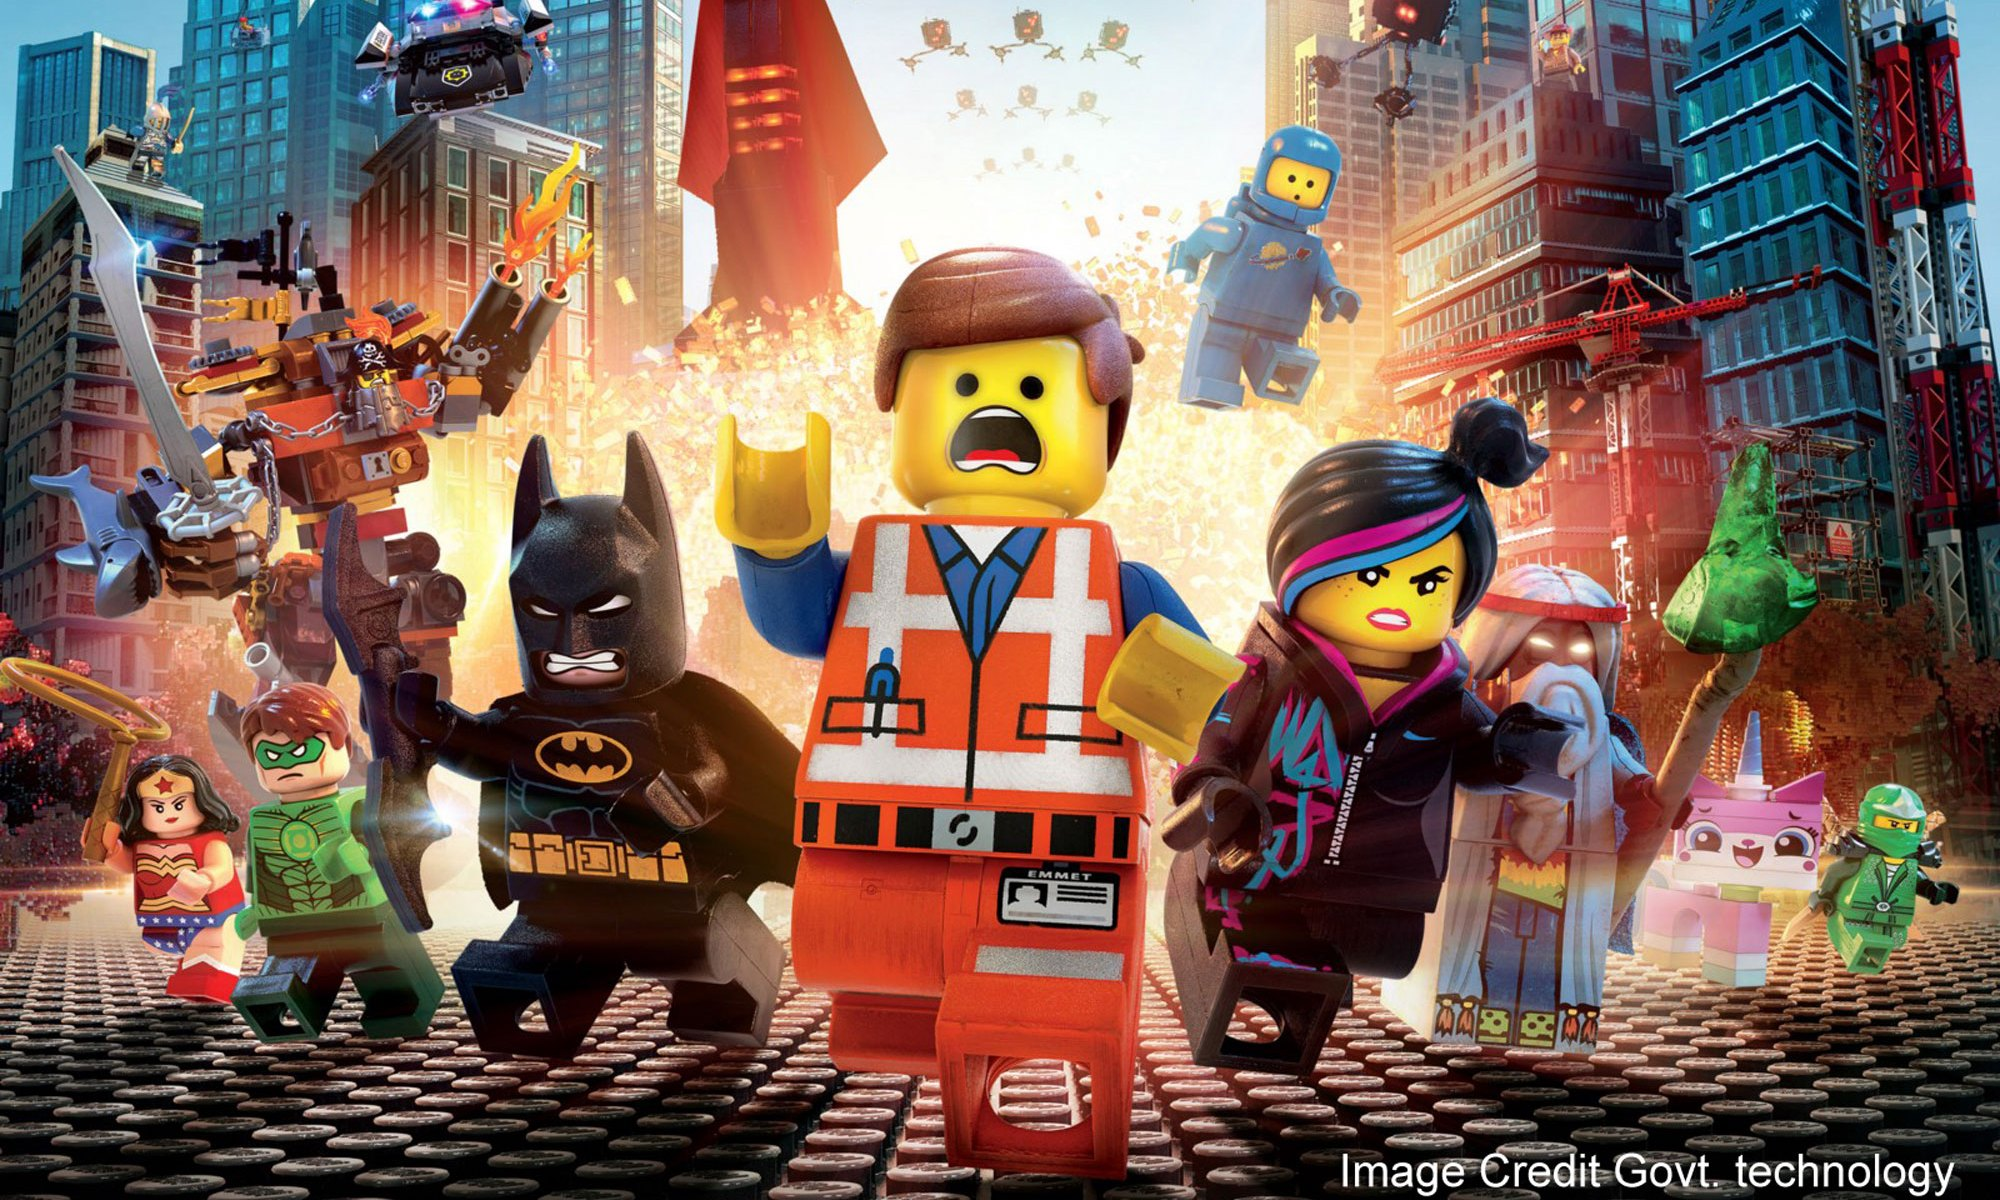 Lego Uses Social Media To Enhance The Customer Experience